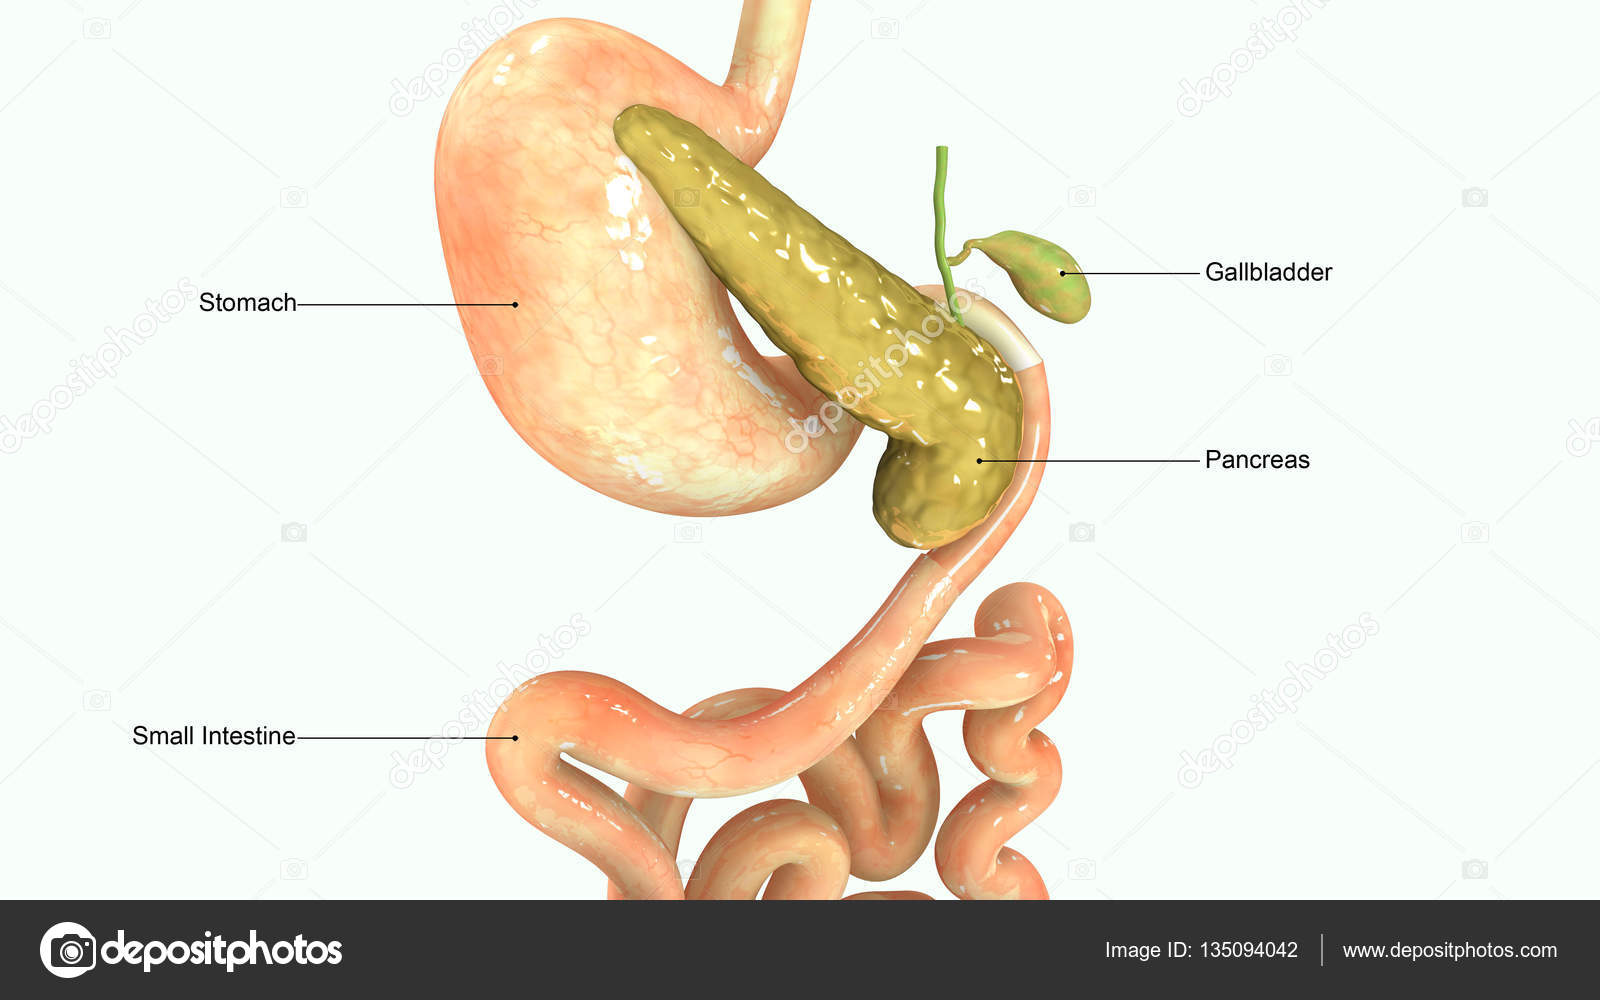 Bauchspeicheldrüse 3D-Illustration — Stockfoto © sciencepics #135094042